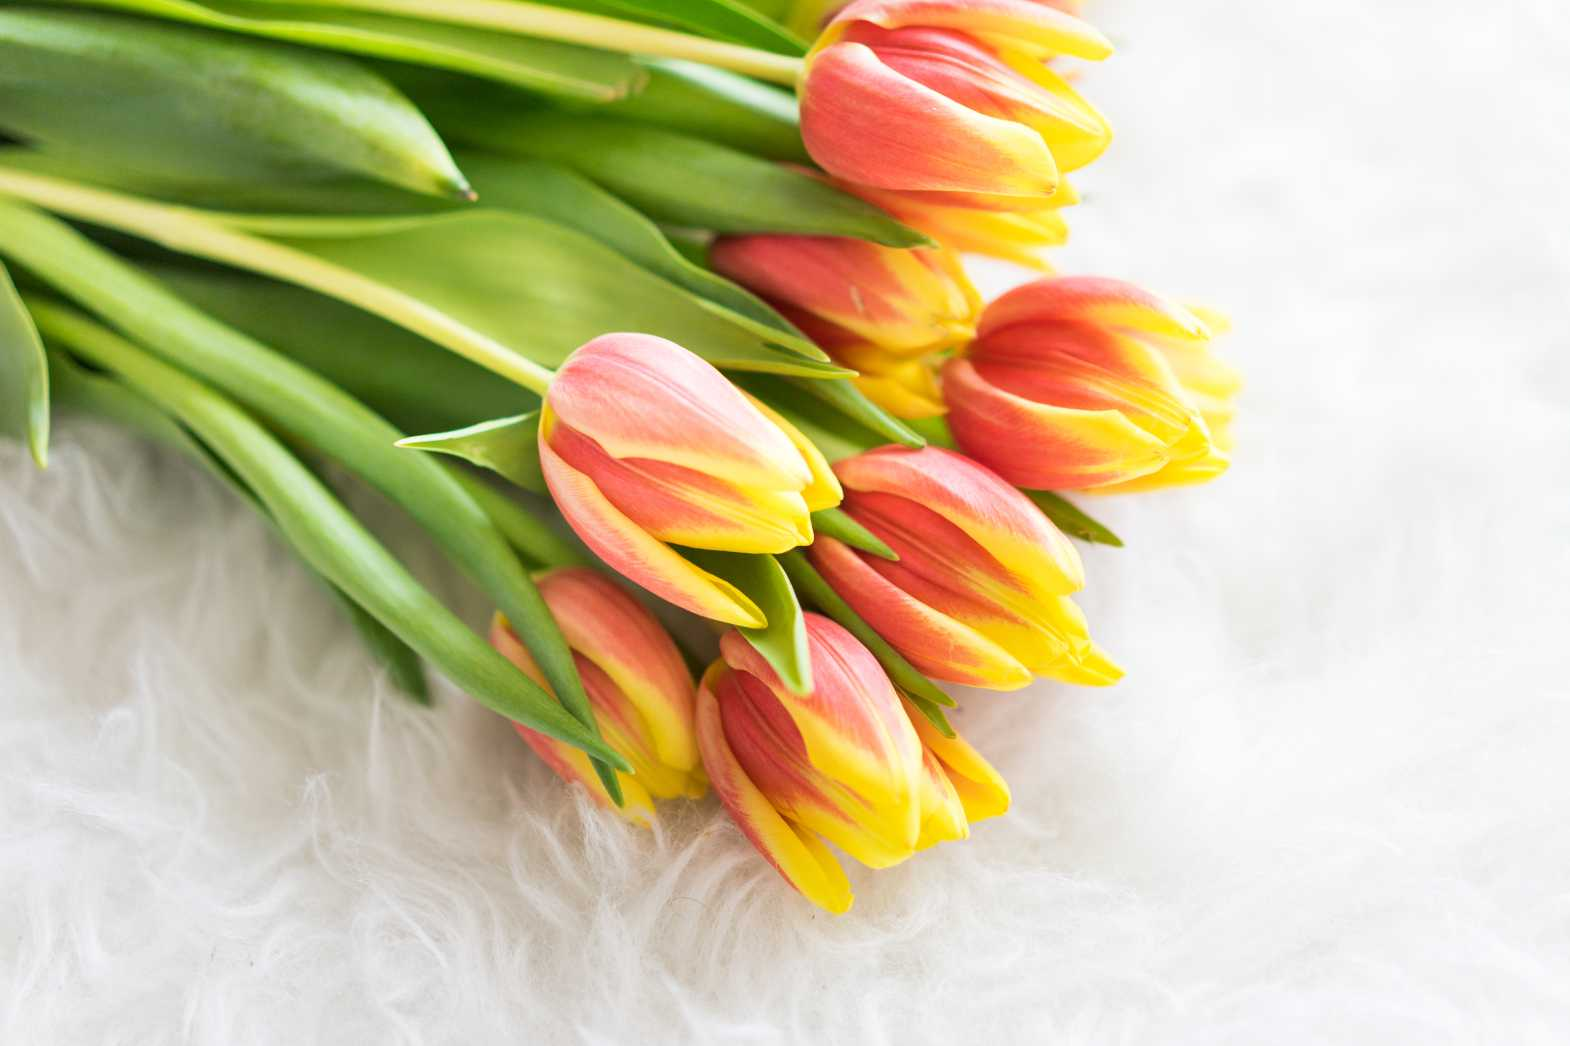 bouquet of kees nelis tulips on white synthetic pelt free stock photos picjumbo.com  - Valentýnské fotografie zdarma – picjumbo.com